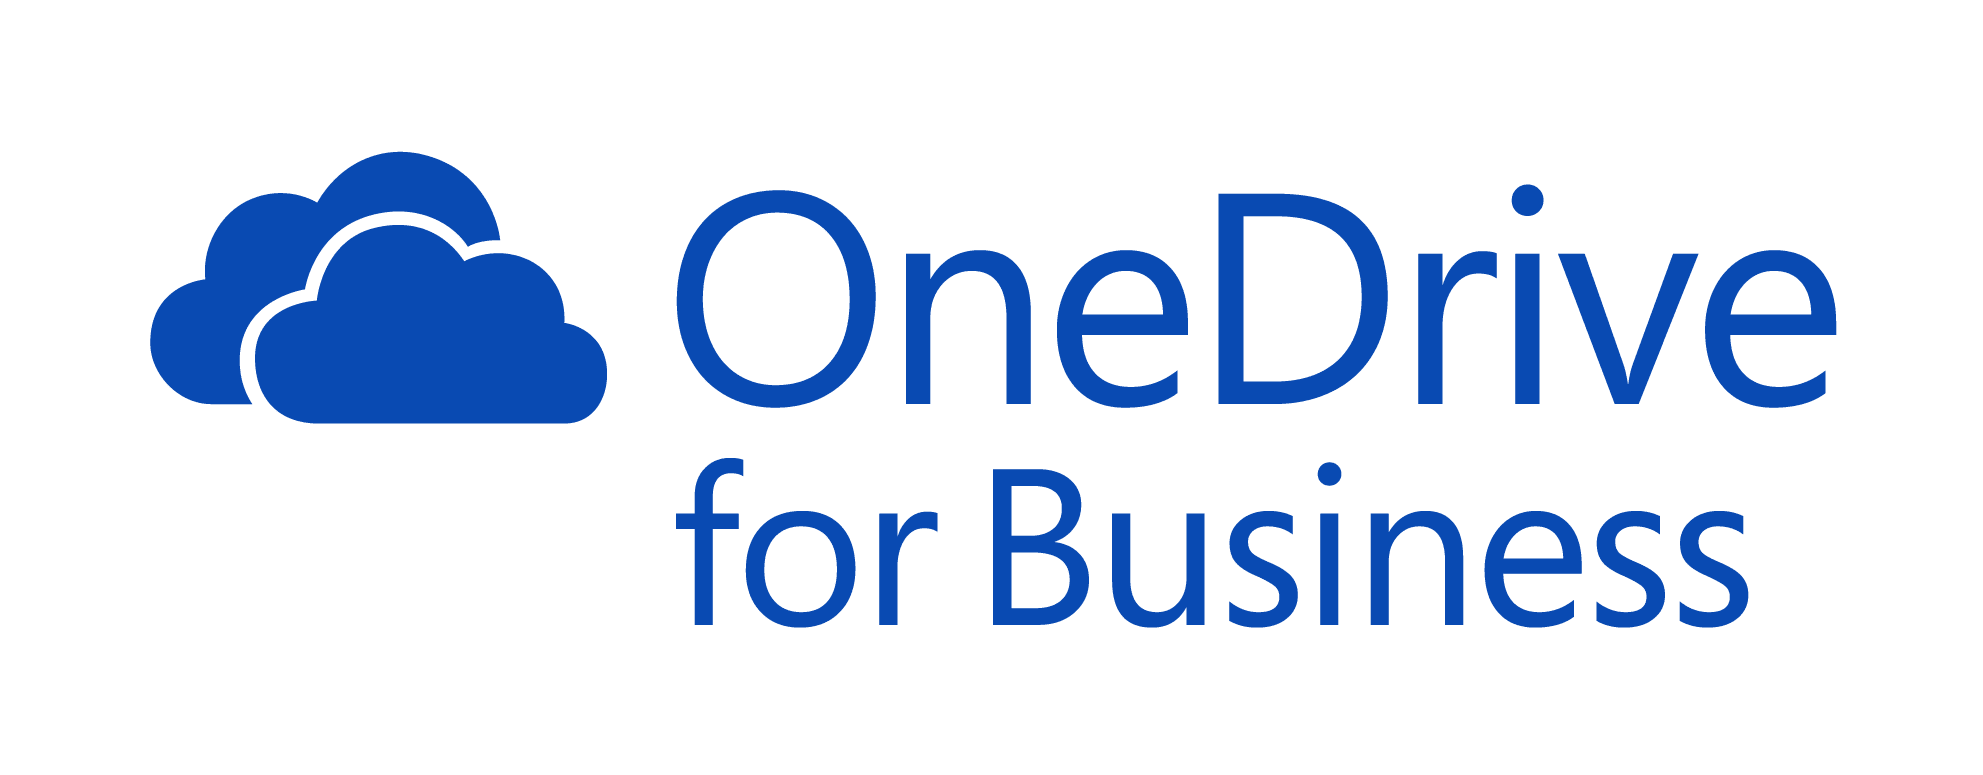 OneDrive-For-Business-biz-large-logo-high-resolution-transparent-alpha-channel-png-file-press